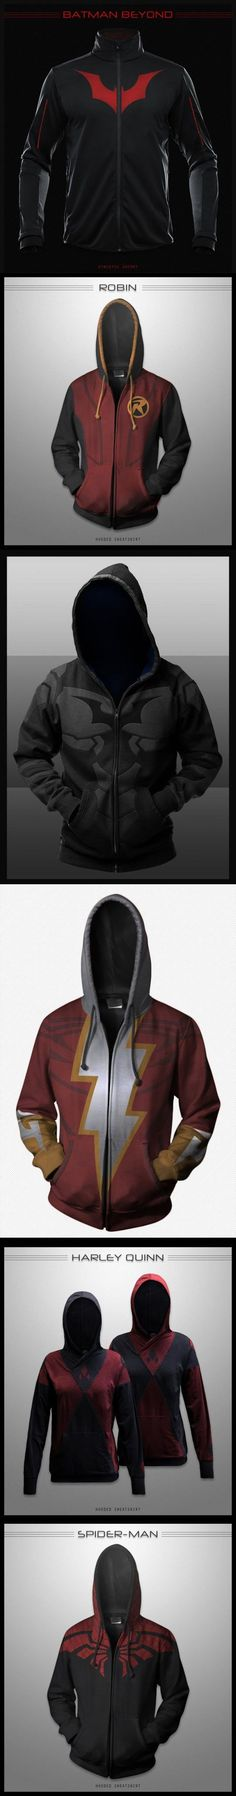 funny-hoodies-icons-Superhero-Spawn-Robin: